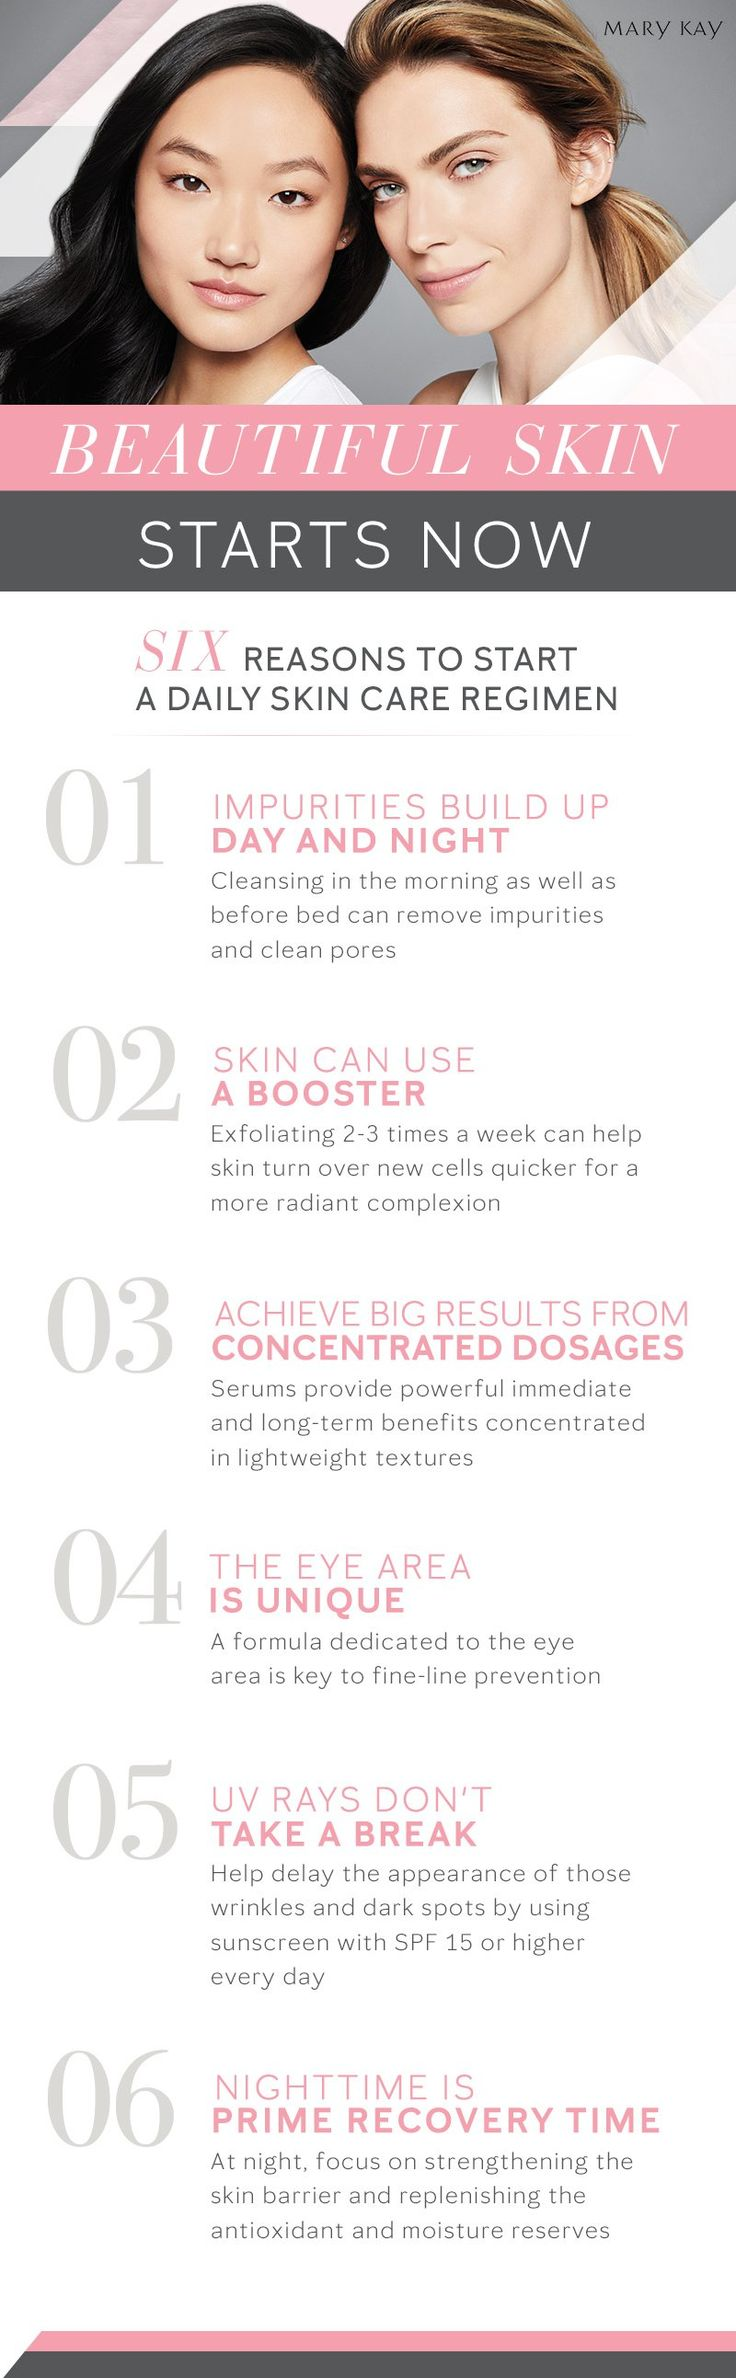 It's never too early or too late to start caring for your skin. Whether it's maintaining a youthful complexion, boosting radiance or supporting skin's resilience, here's what a daily skin care regimen can do for you. | Mary Kay